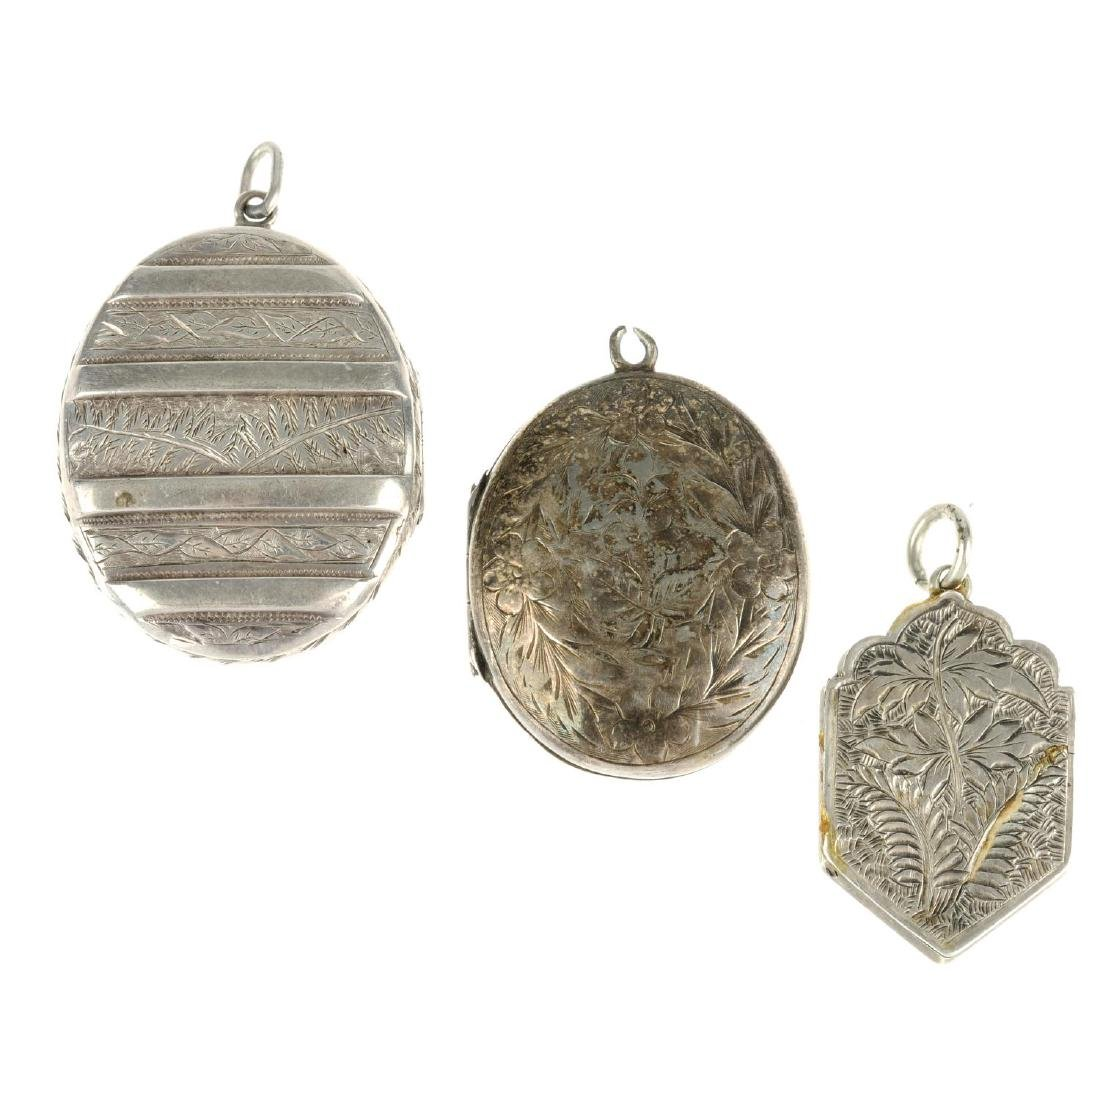 Three late 19th century lockets. The first an